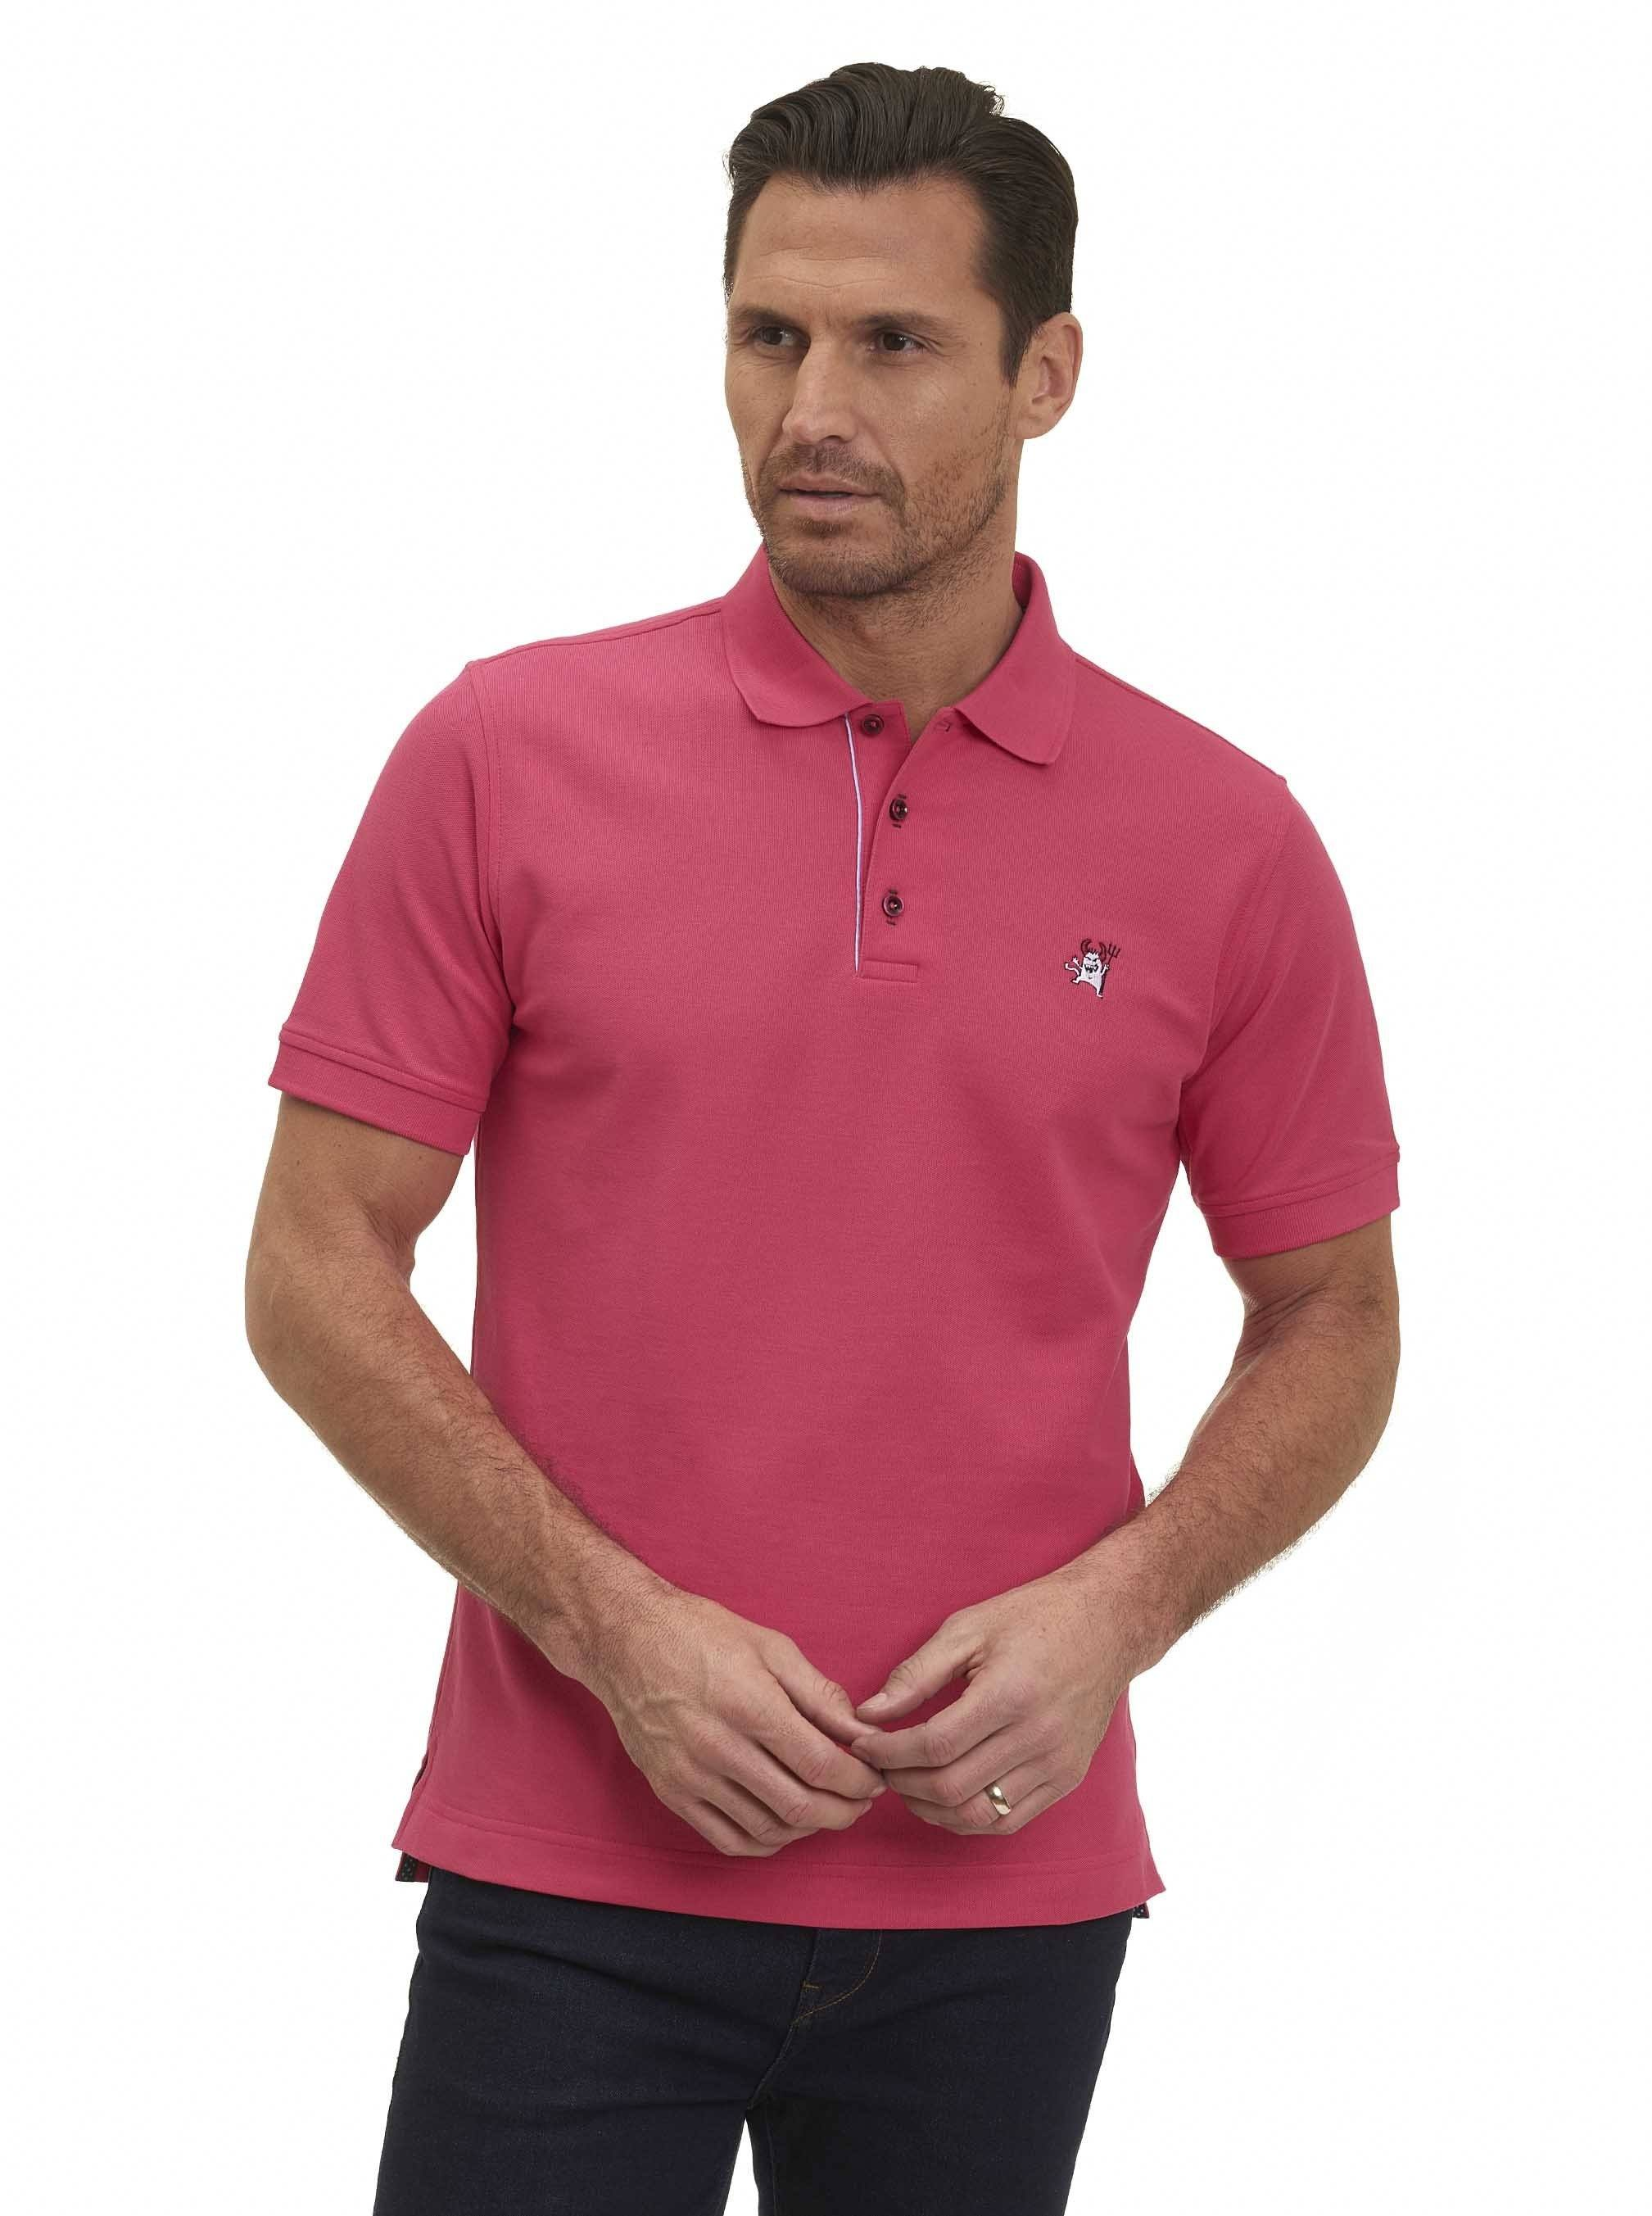 DEVIL POLO,POLOS,Robert Graham, | GentRow.com